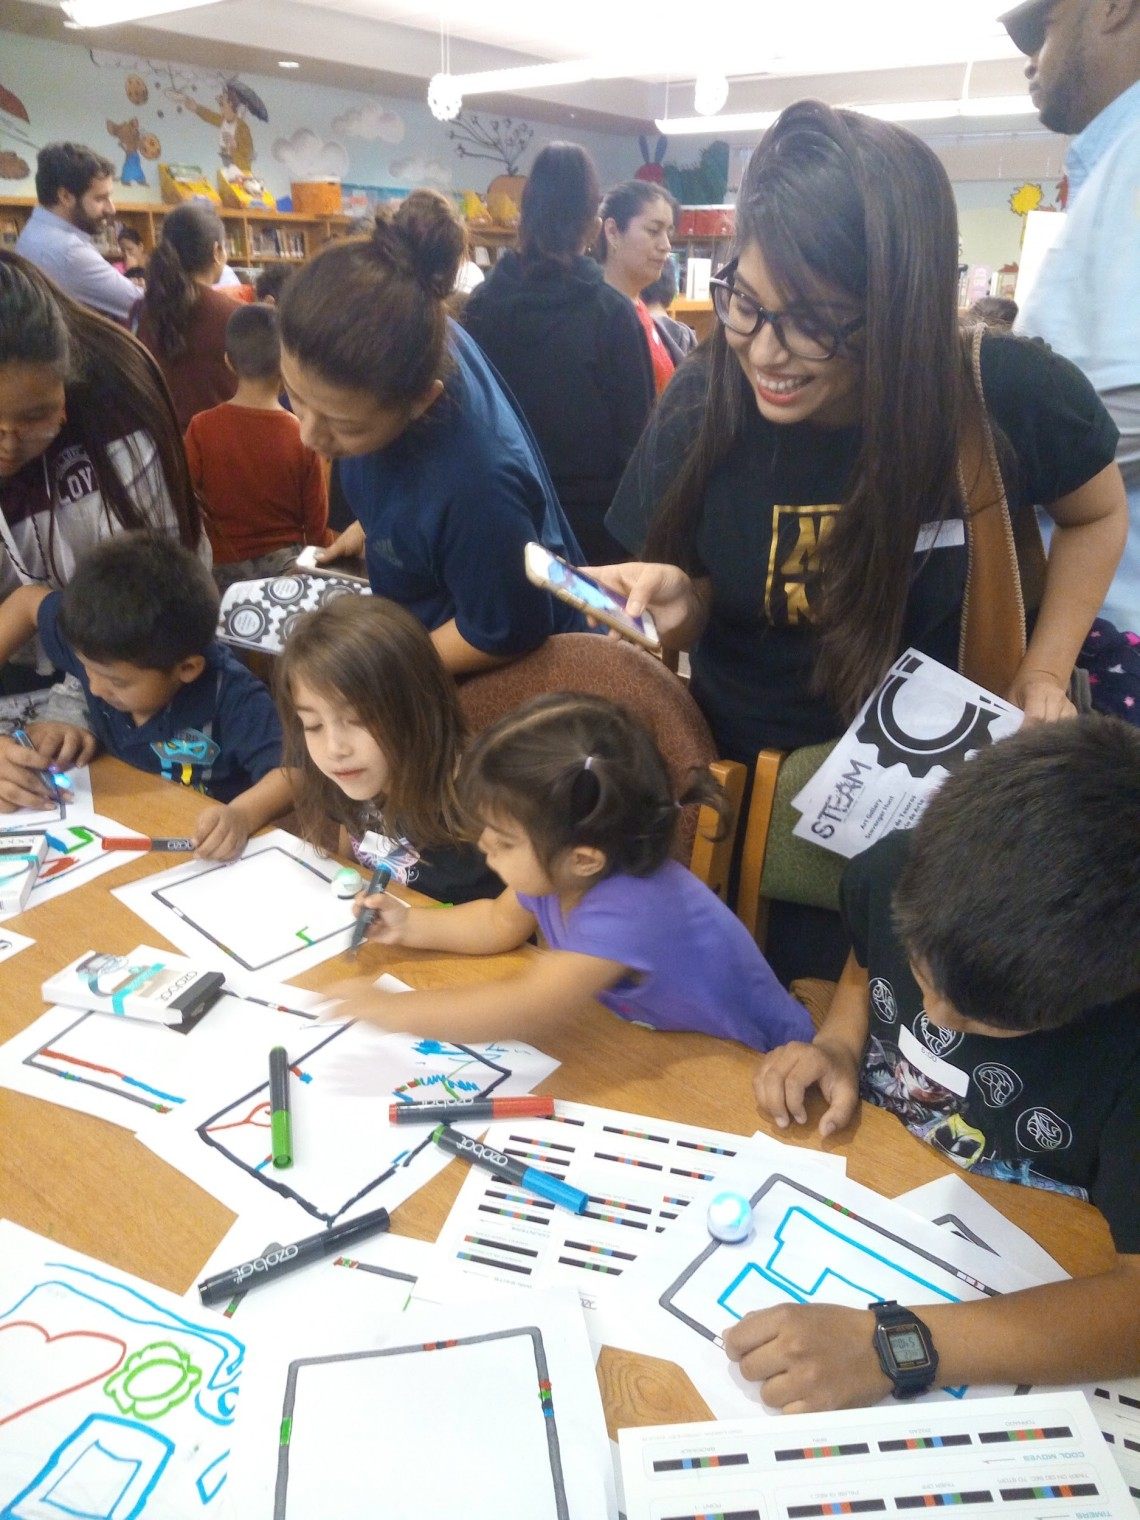 Learning to code with Ozobots